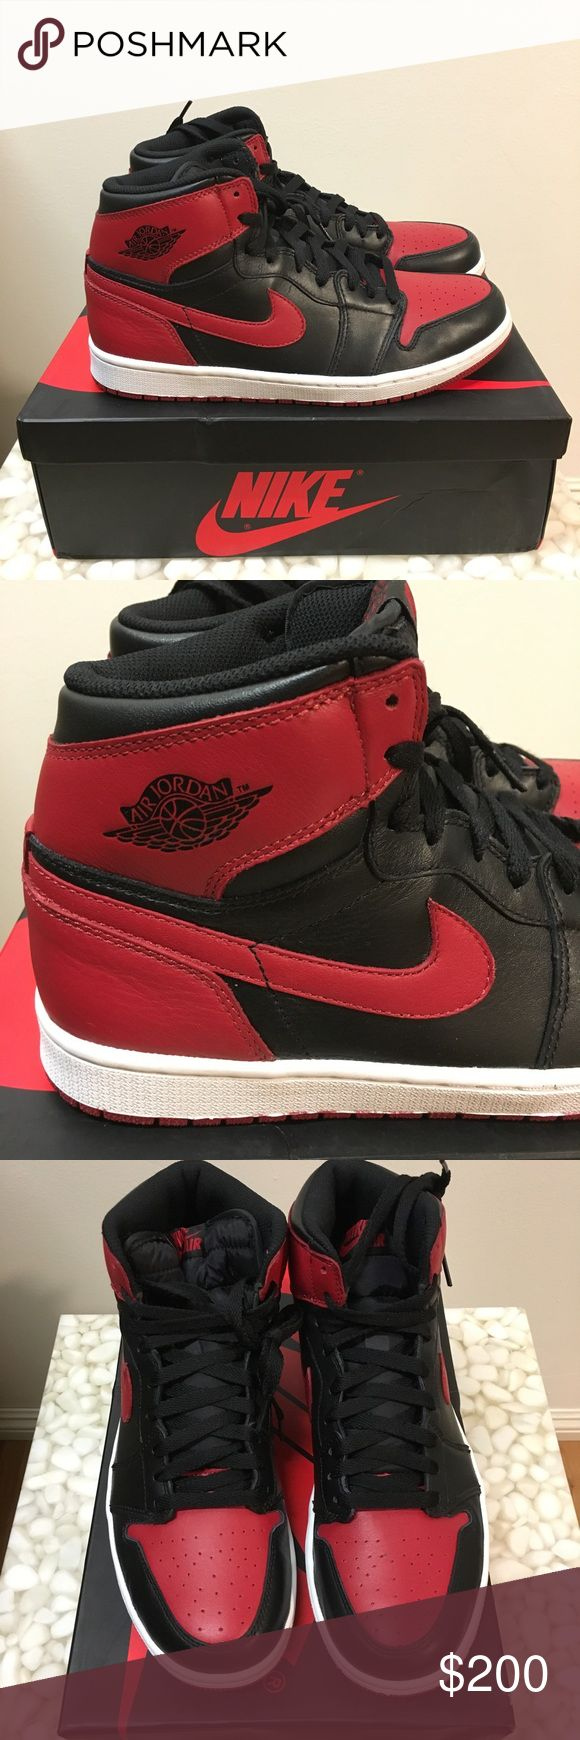 Nike Air Jordan AJ 1 OG Bred Brand new and comes with an extra set of lace. The very first Air Jordan. Believe that this is an UA version but looks 100% legit. Bad purchase form ebay. Jordan Shoes Athletic Shoes